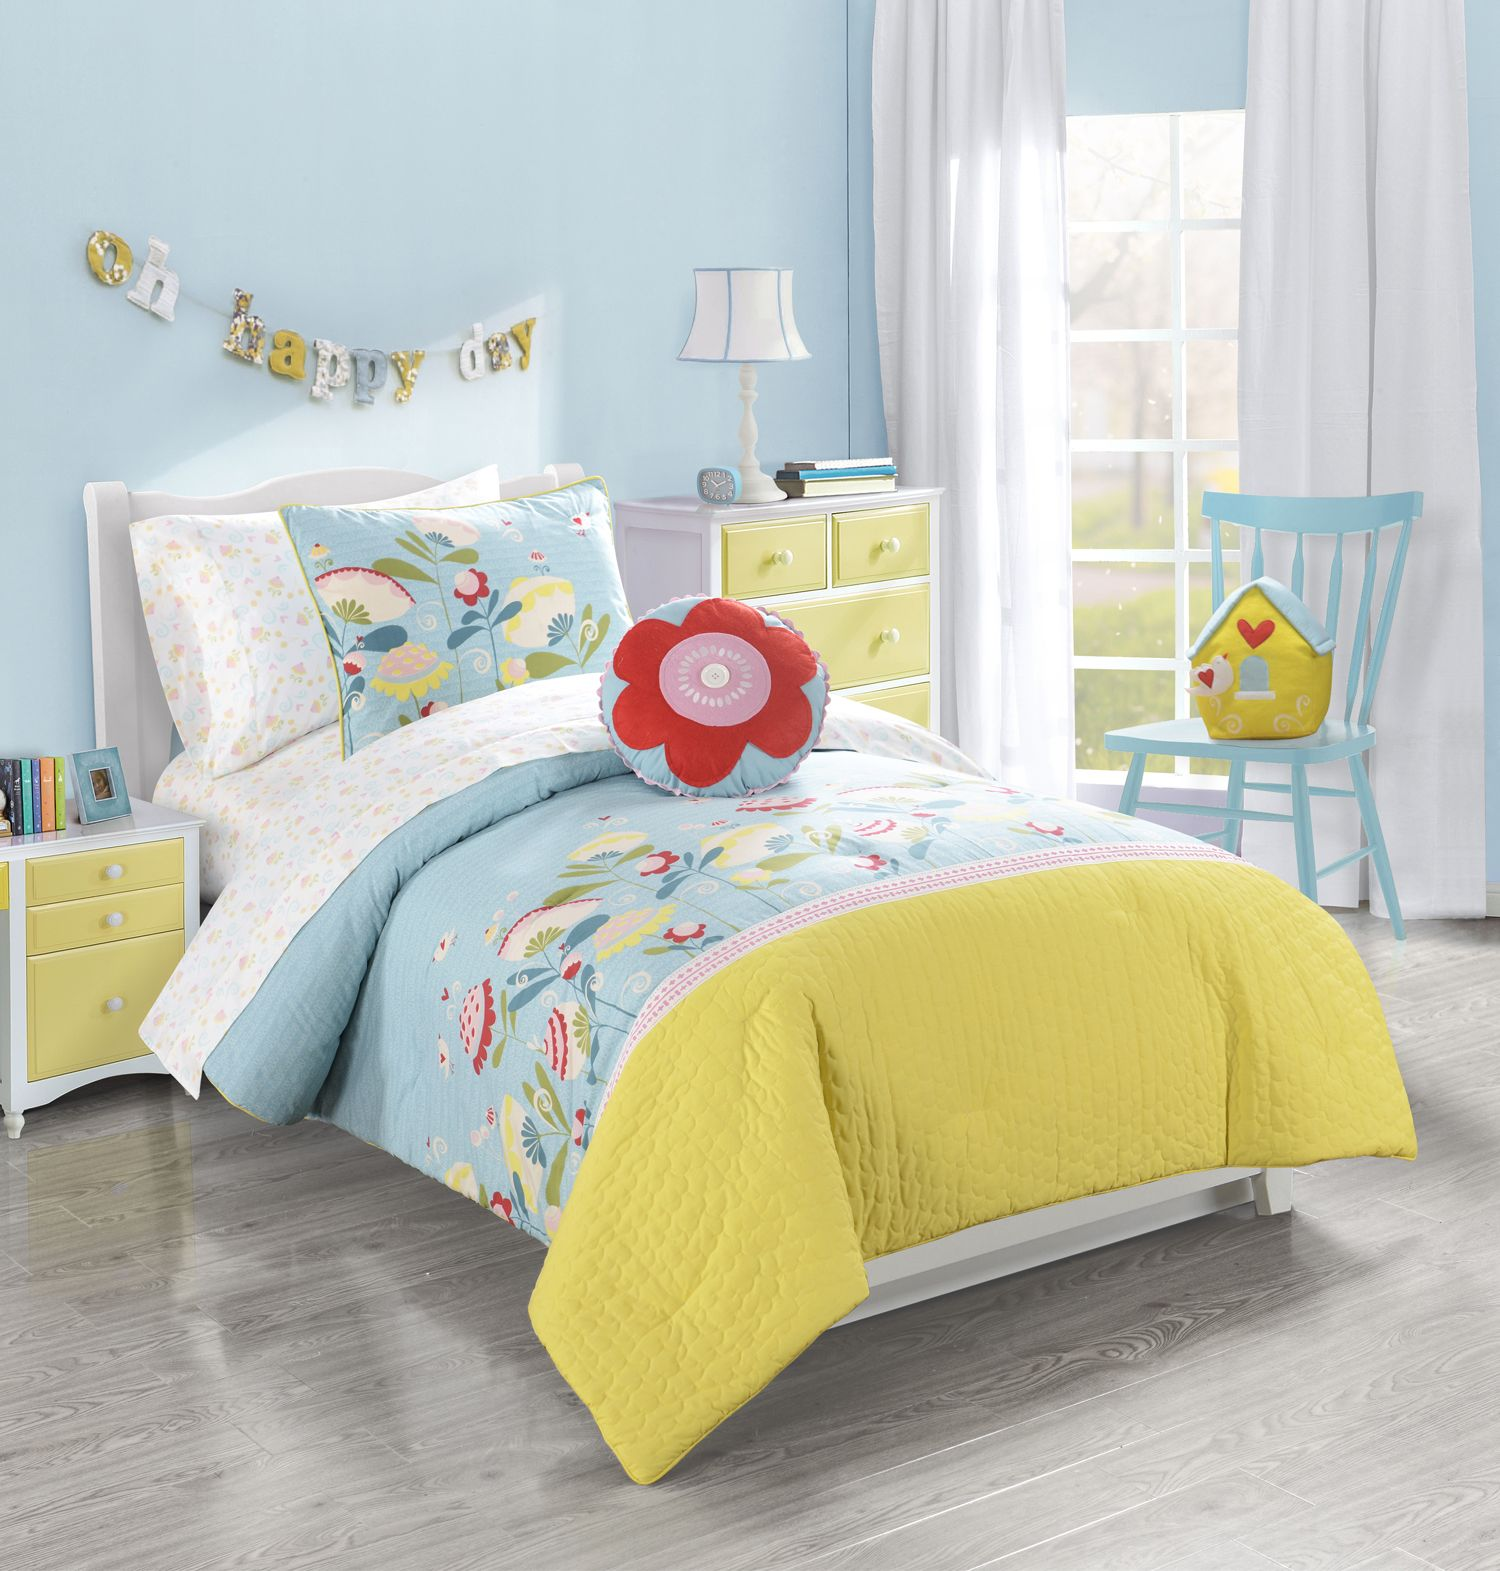 Frank + LuLu\'s Happy Valley girls bedding collection is sure to ...